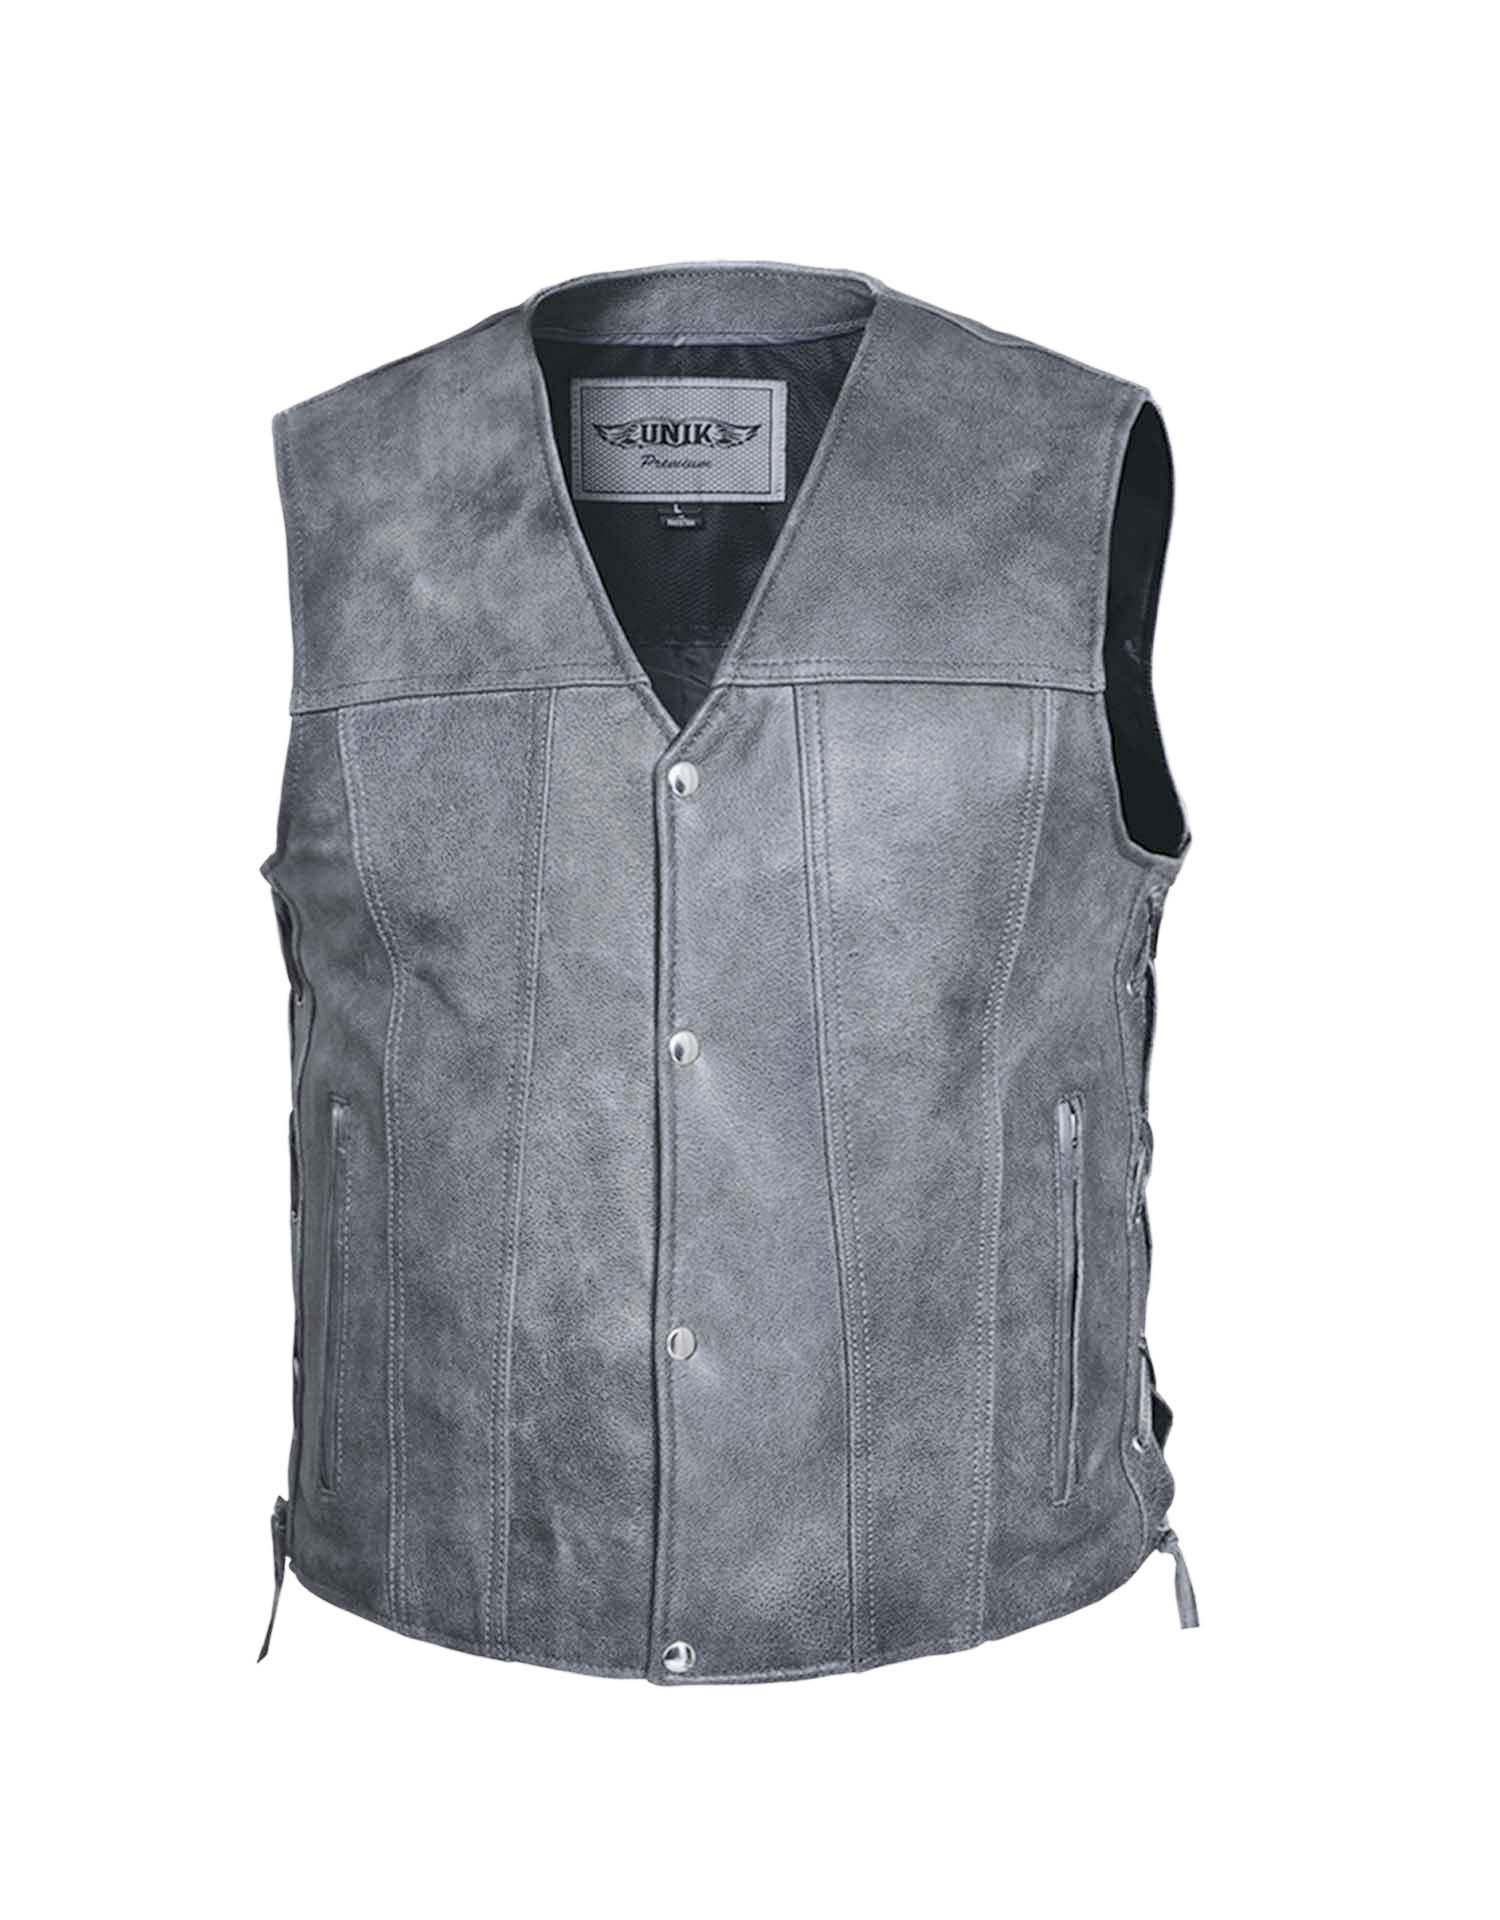 Men's Premium Tombstone Grey Leather Vest (Size: Small)